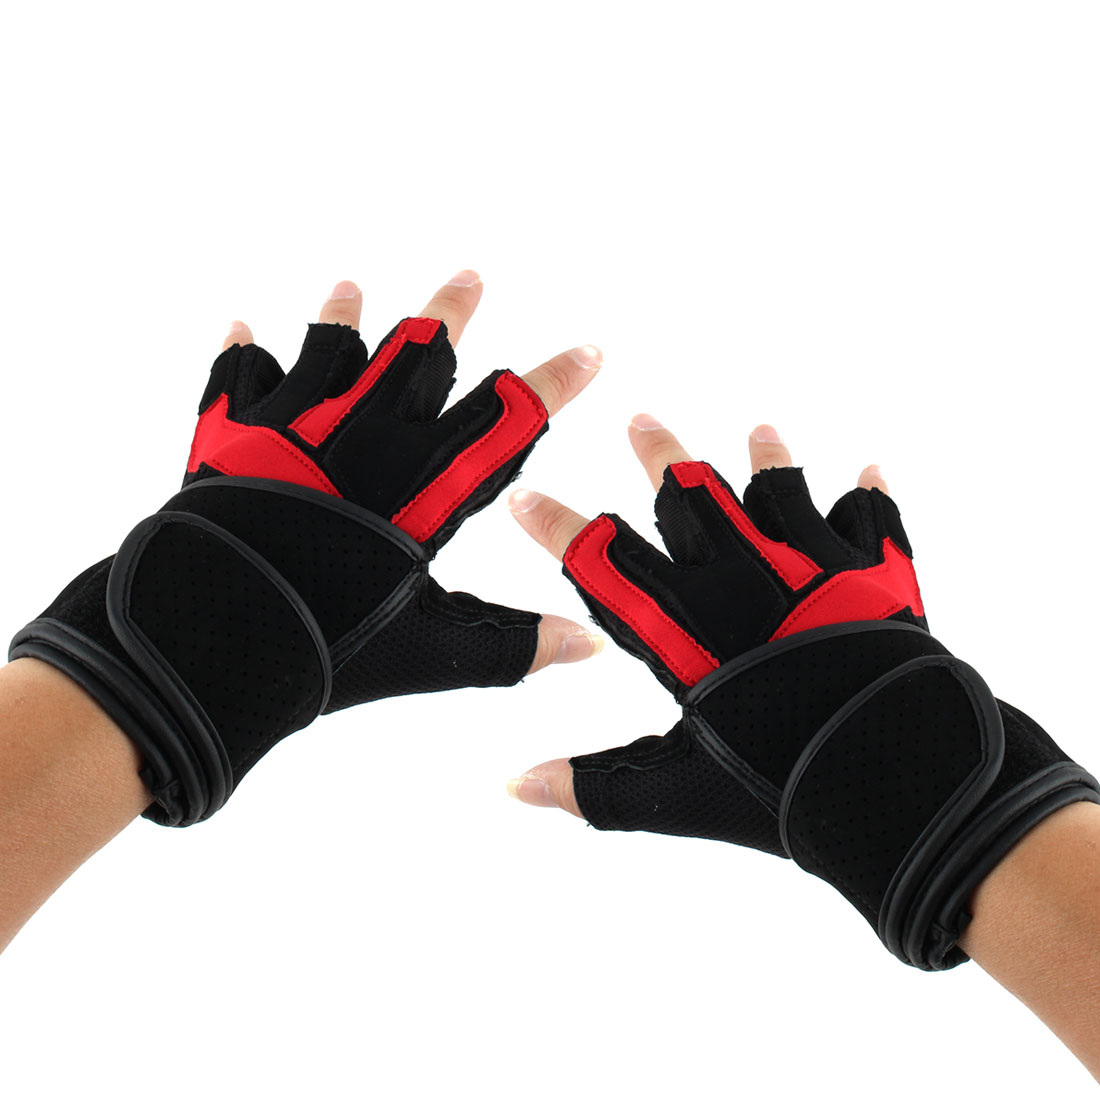 BOODUN Authorized Men PU Leather Adjustable Sports Training Workout Half Finger Fitness Gloves Red S Pair